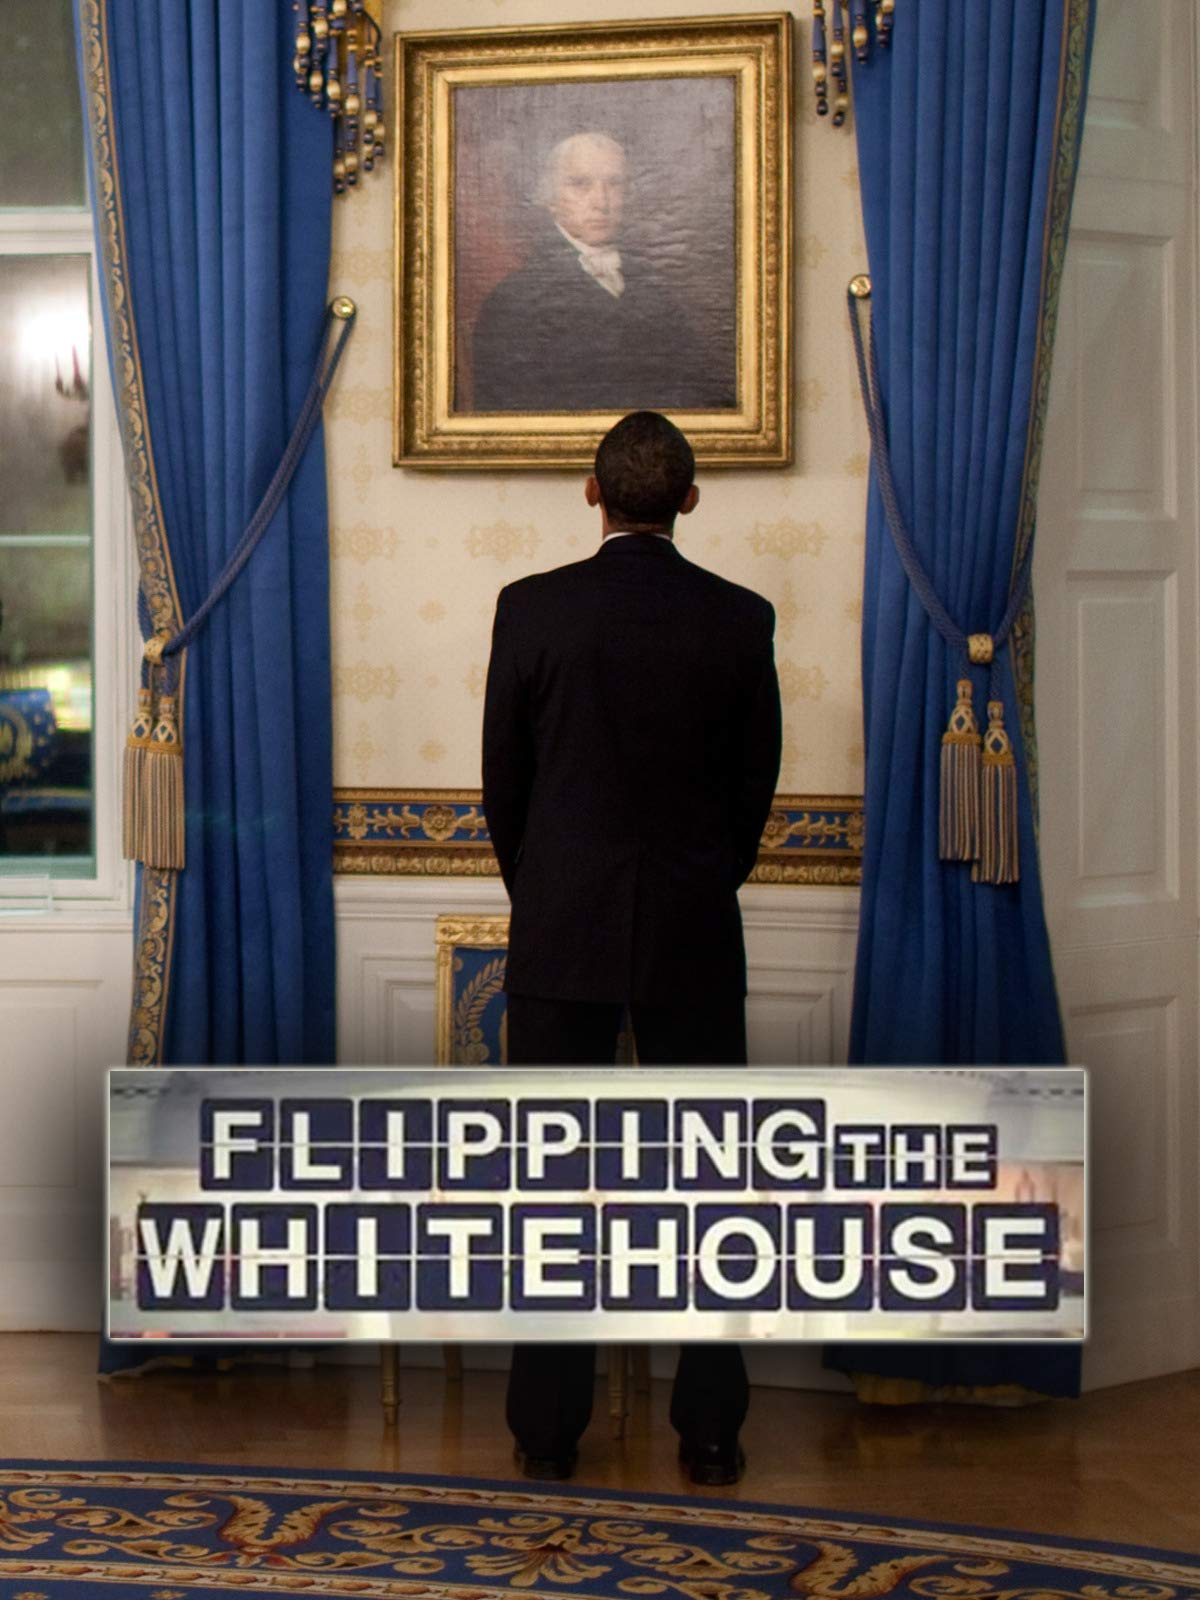 Flipping the White House